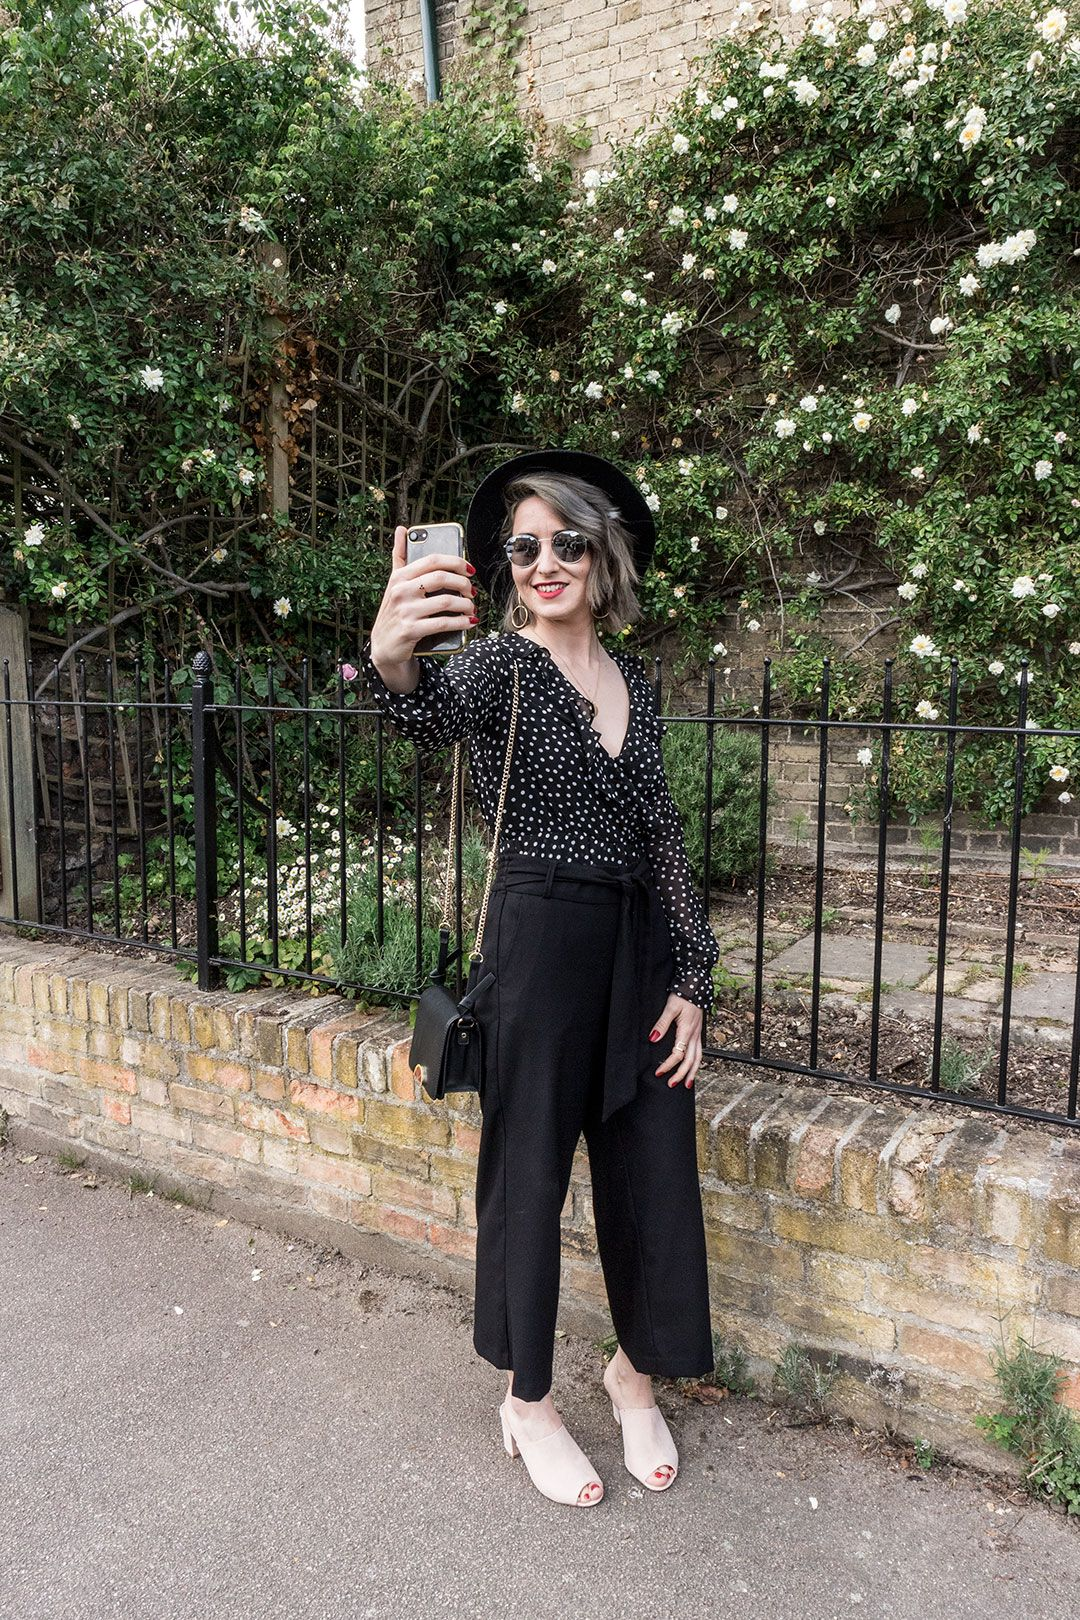 Polka dot blouse and culottes | Selfie game | She talks Glam | 10 things I have done in my 6 months as blogger